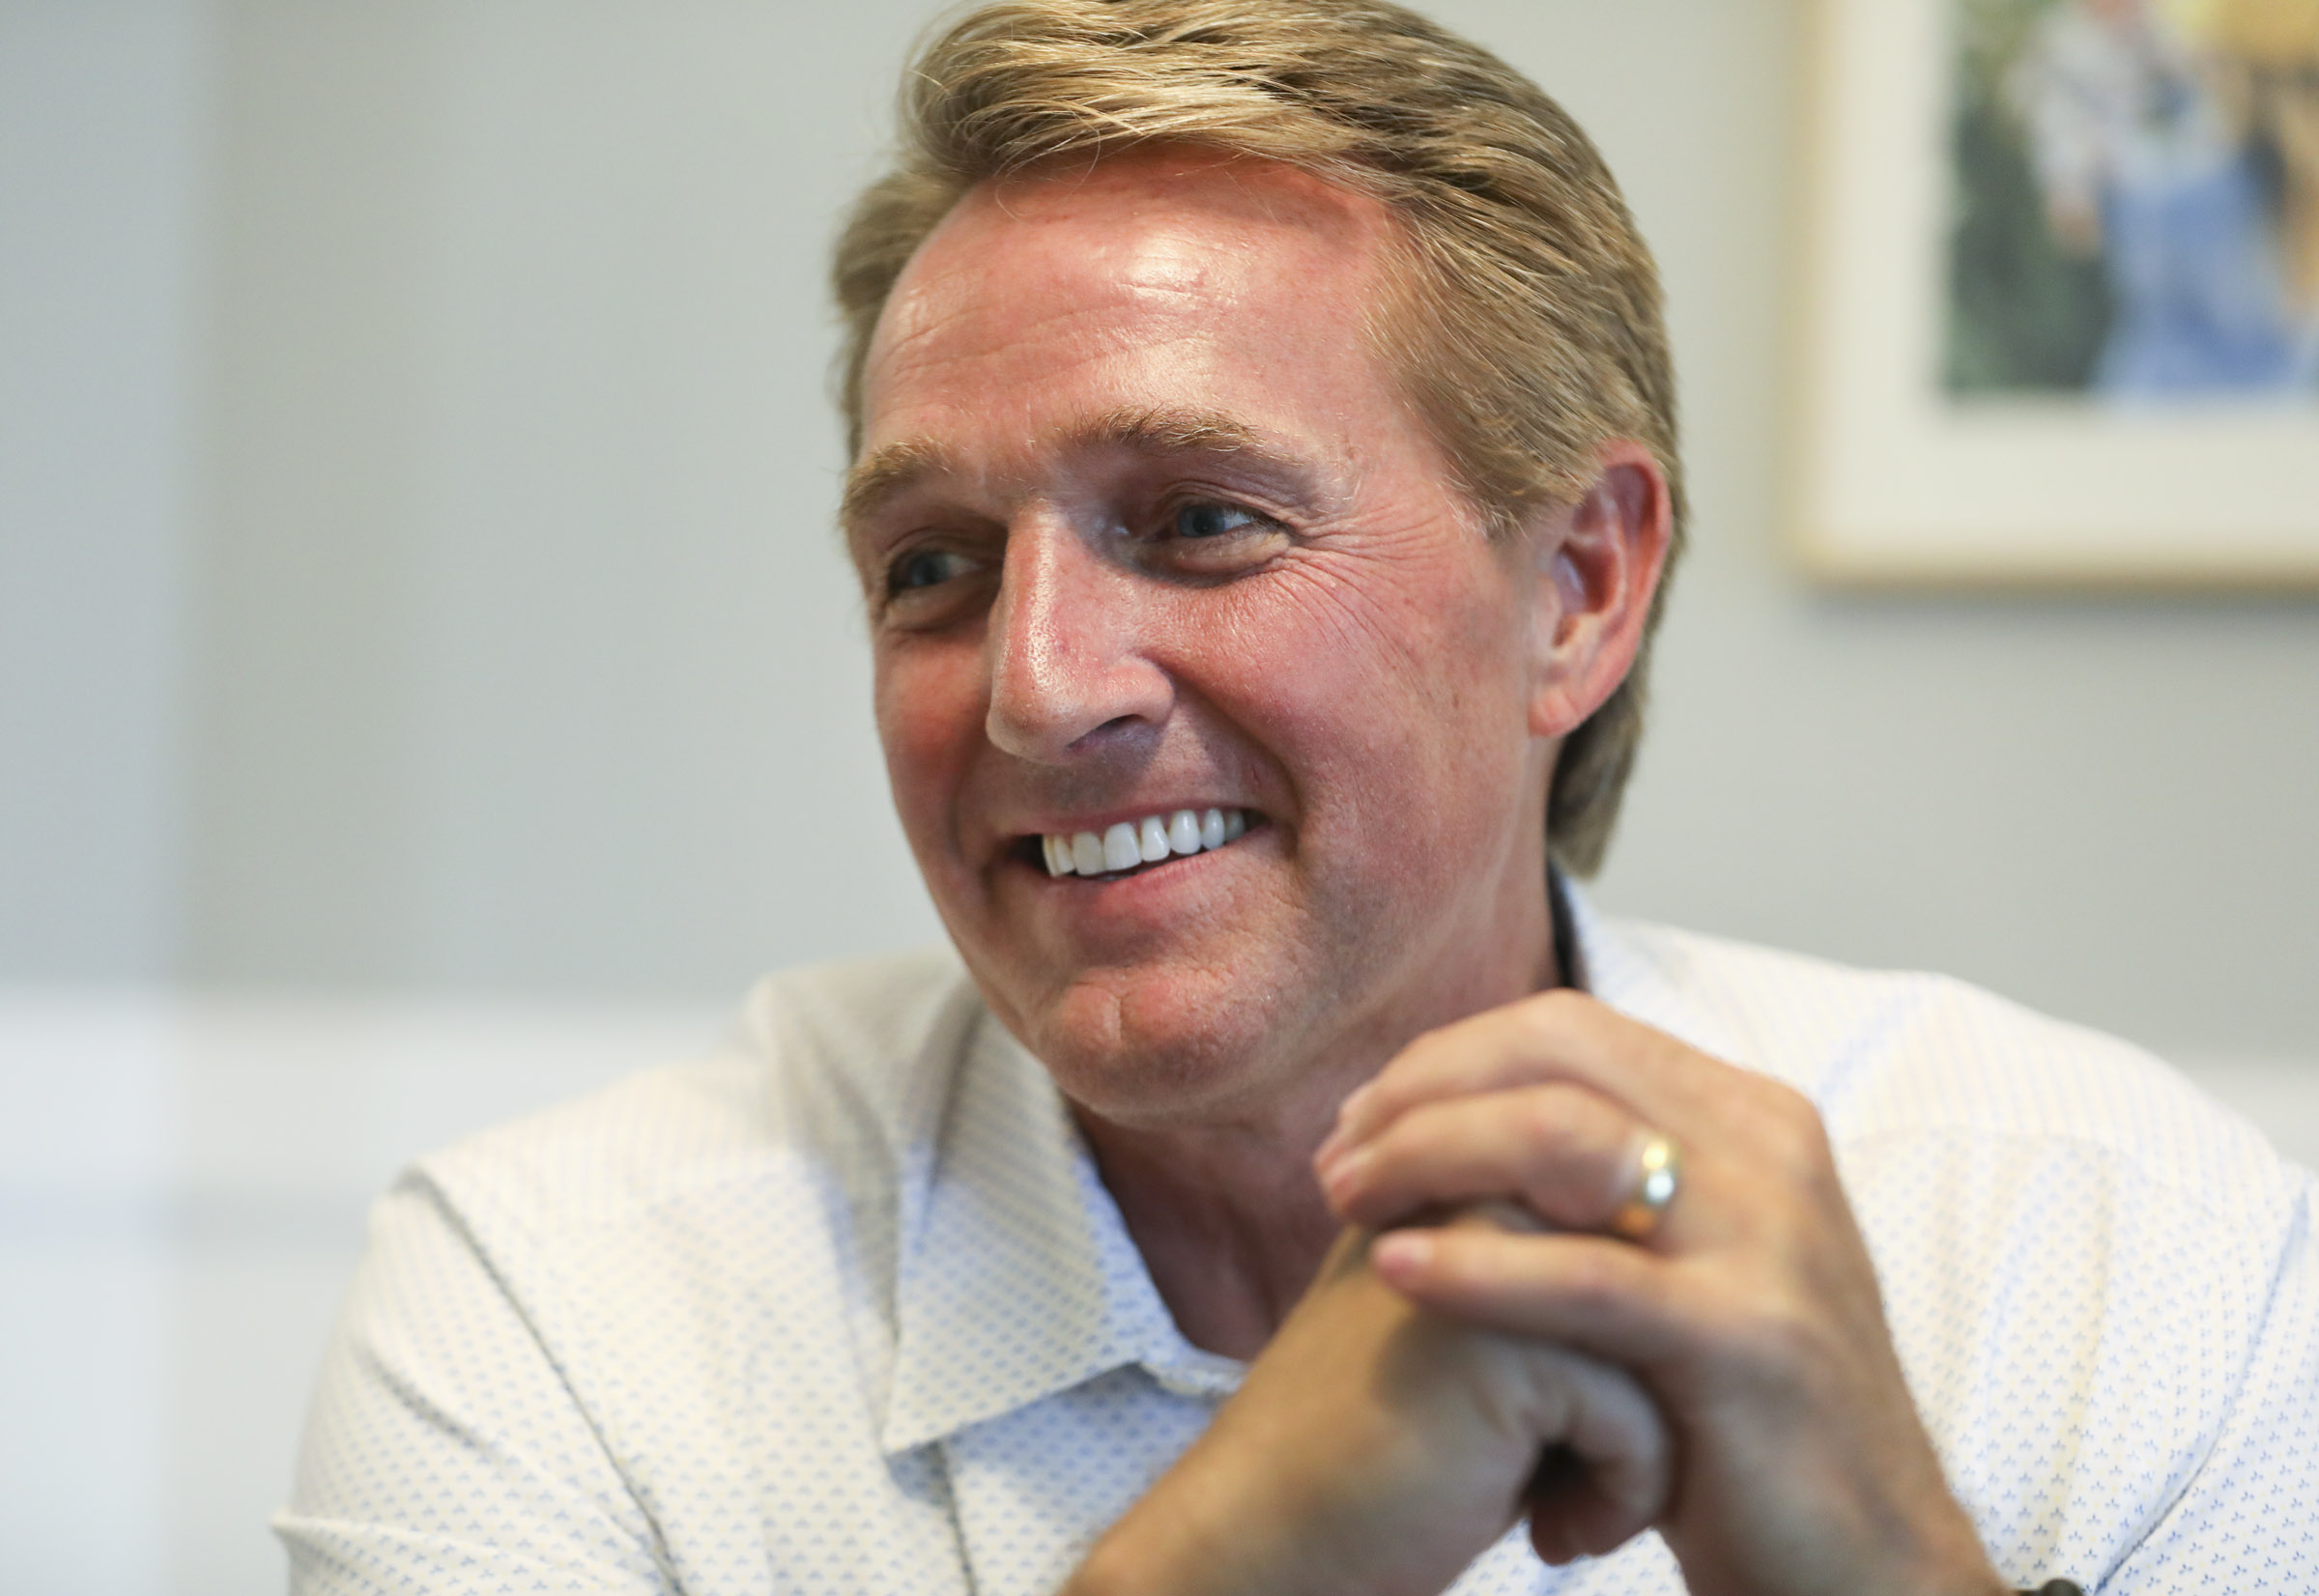 Former Arizona Republican Sen. Jeff Flake talks to the Deseret News during an interview in Provo, Utah, on July 31, 2019.